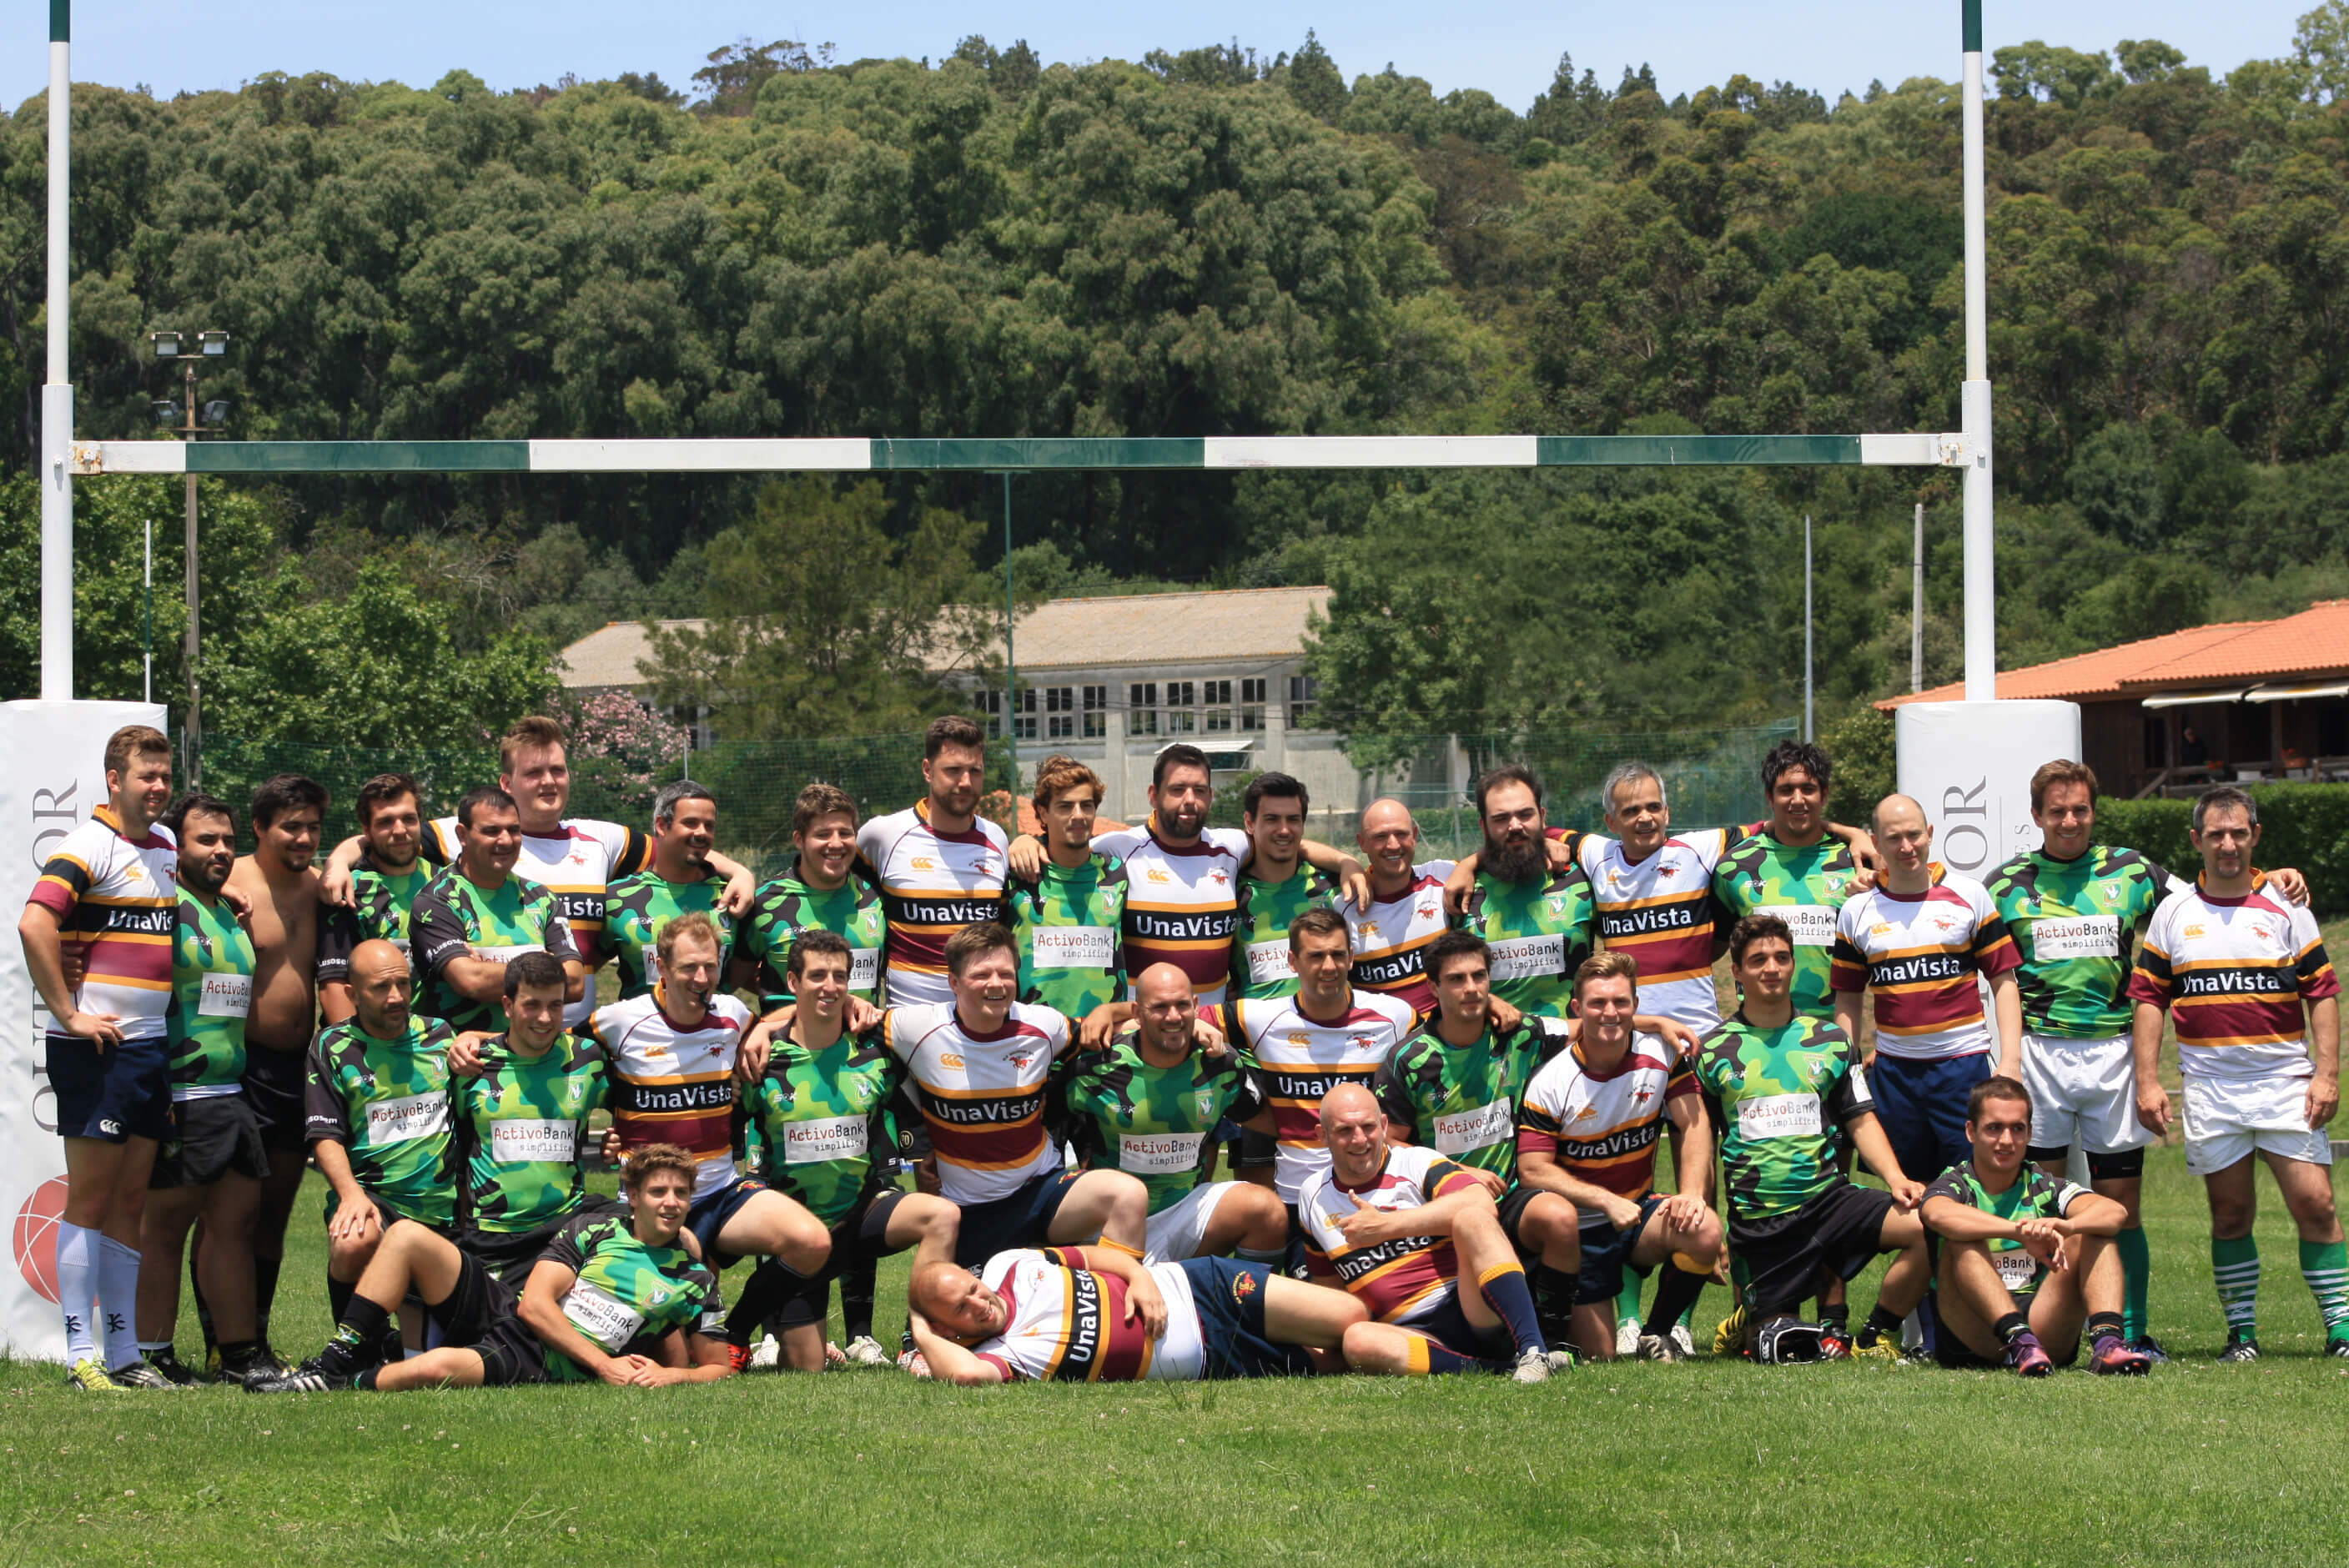 Rugby tour Portugal Spain Italy